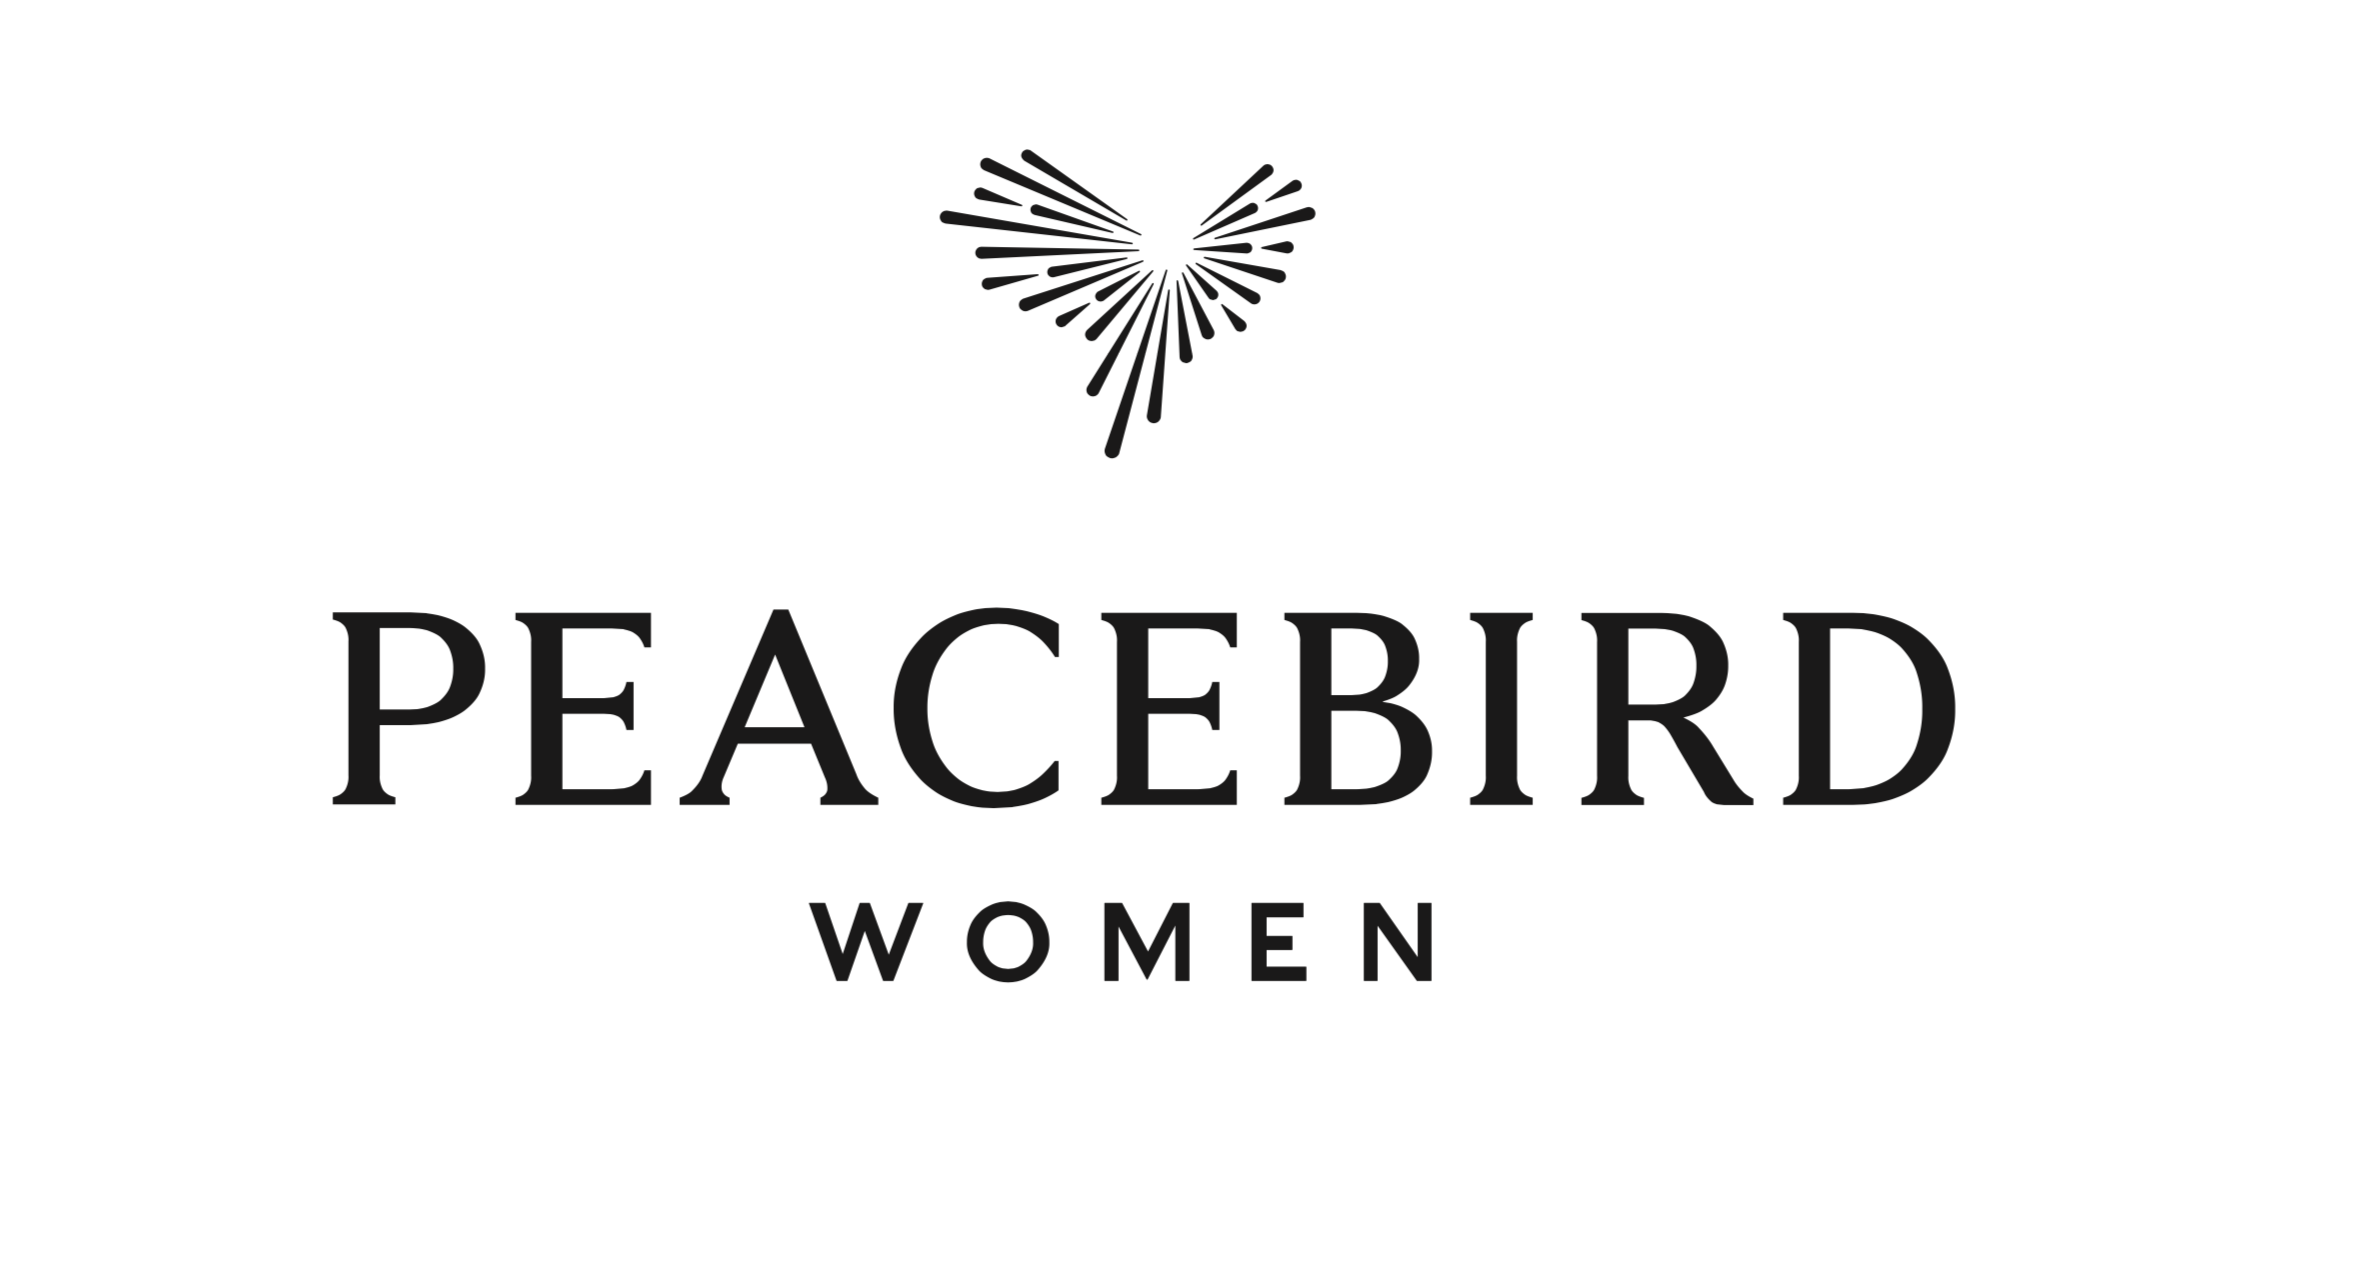 PEACEBIRD WOMEN太平鸟女装.png